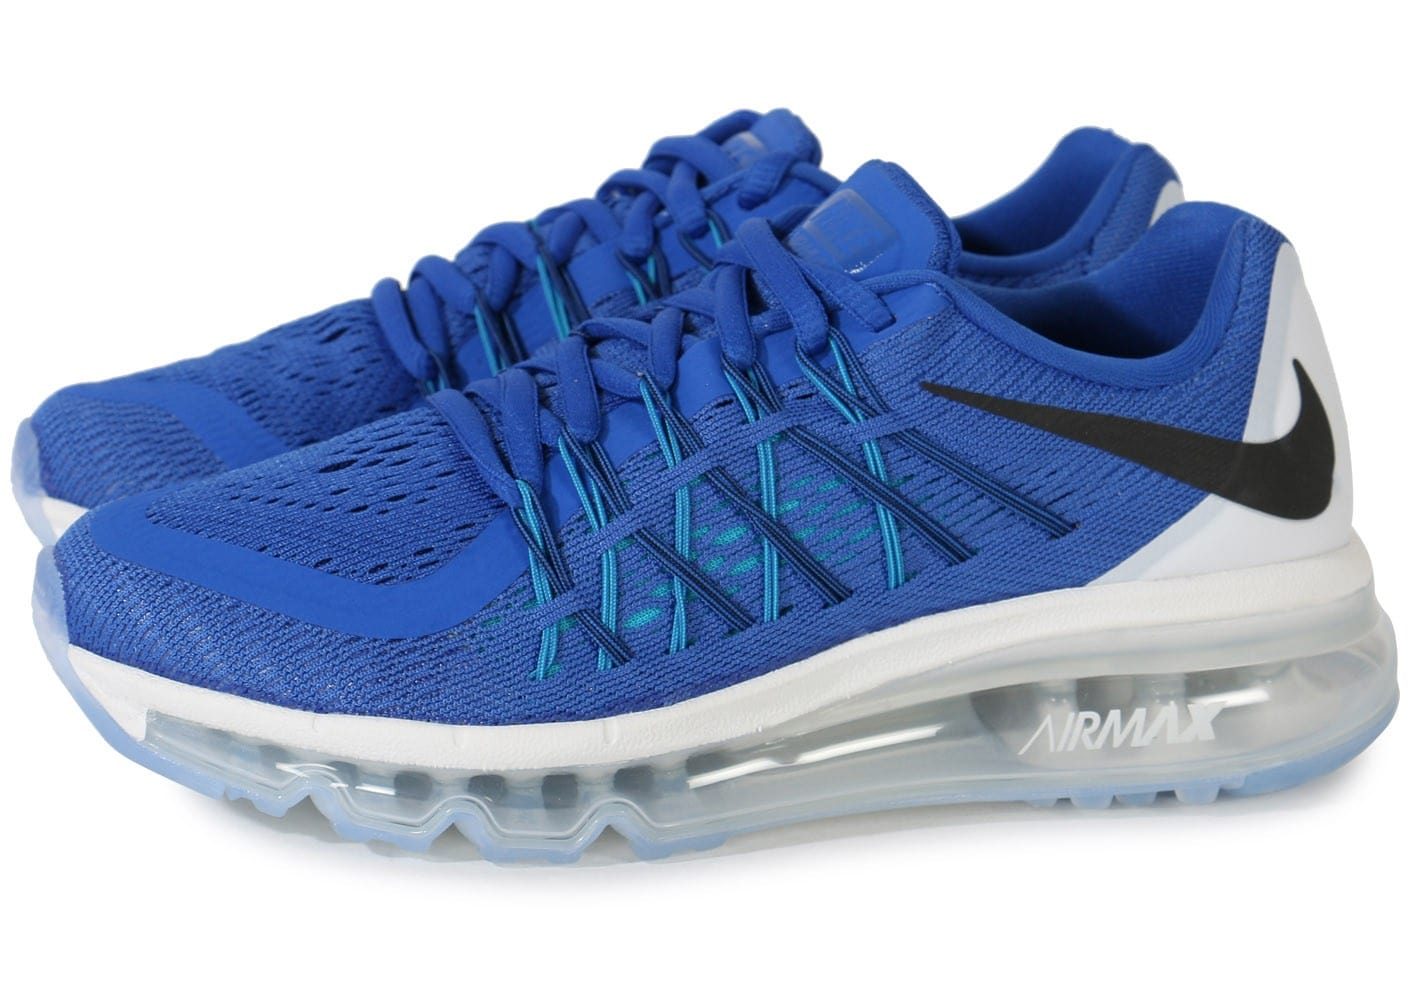 check-out 4dfb8 cac00 Nike Air Max 2015 Junior Bleue - Chaussures Chaussures ...